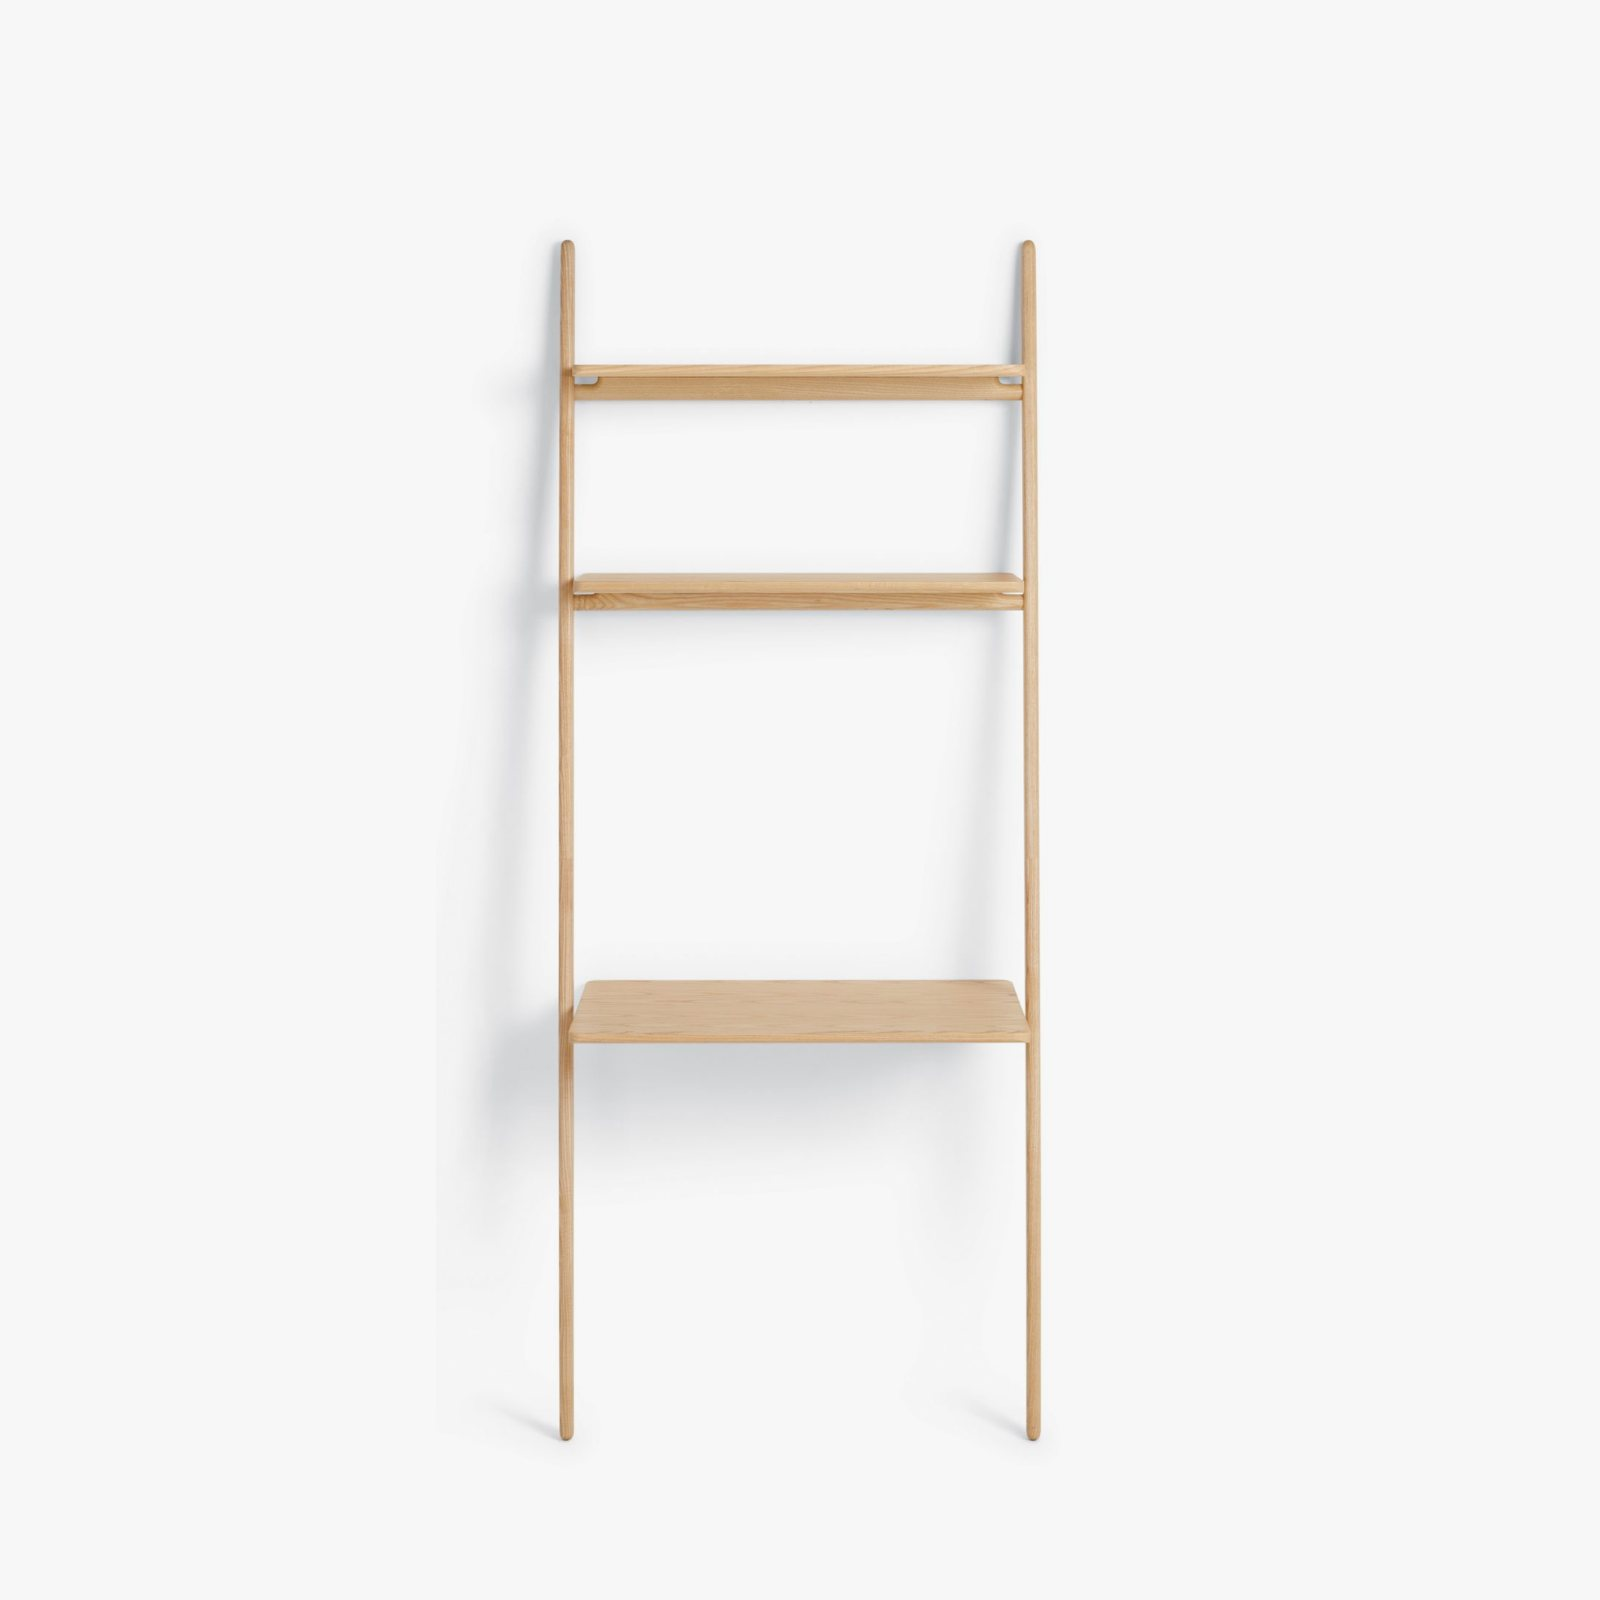 Folk ladder desk shelving by norm architects for design for Design within reach desk